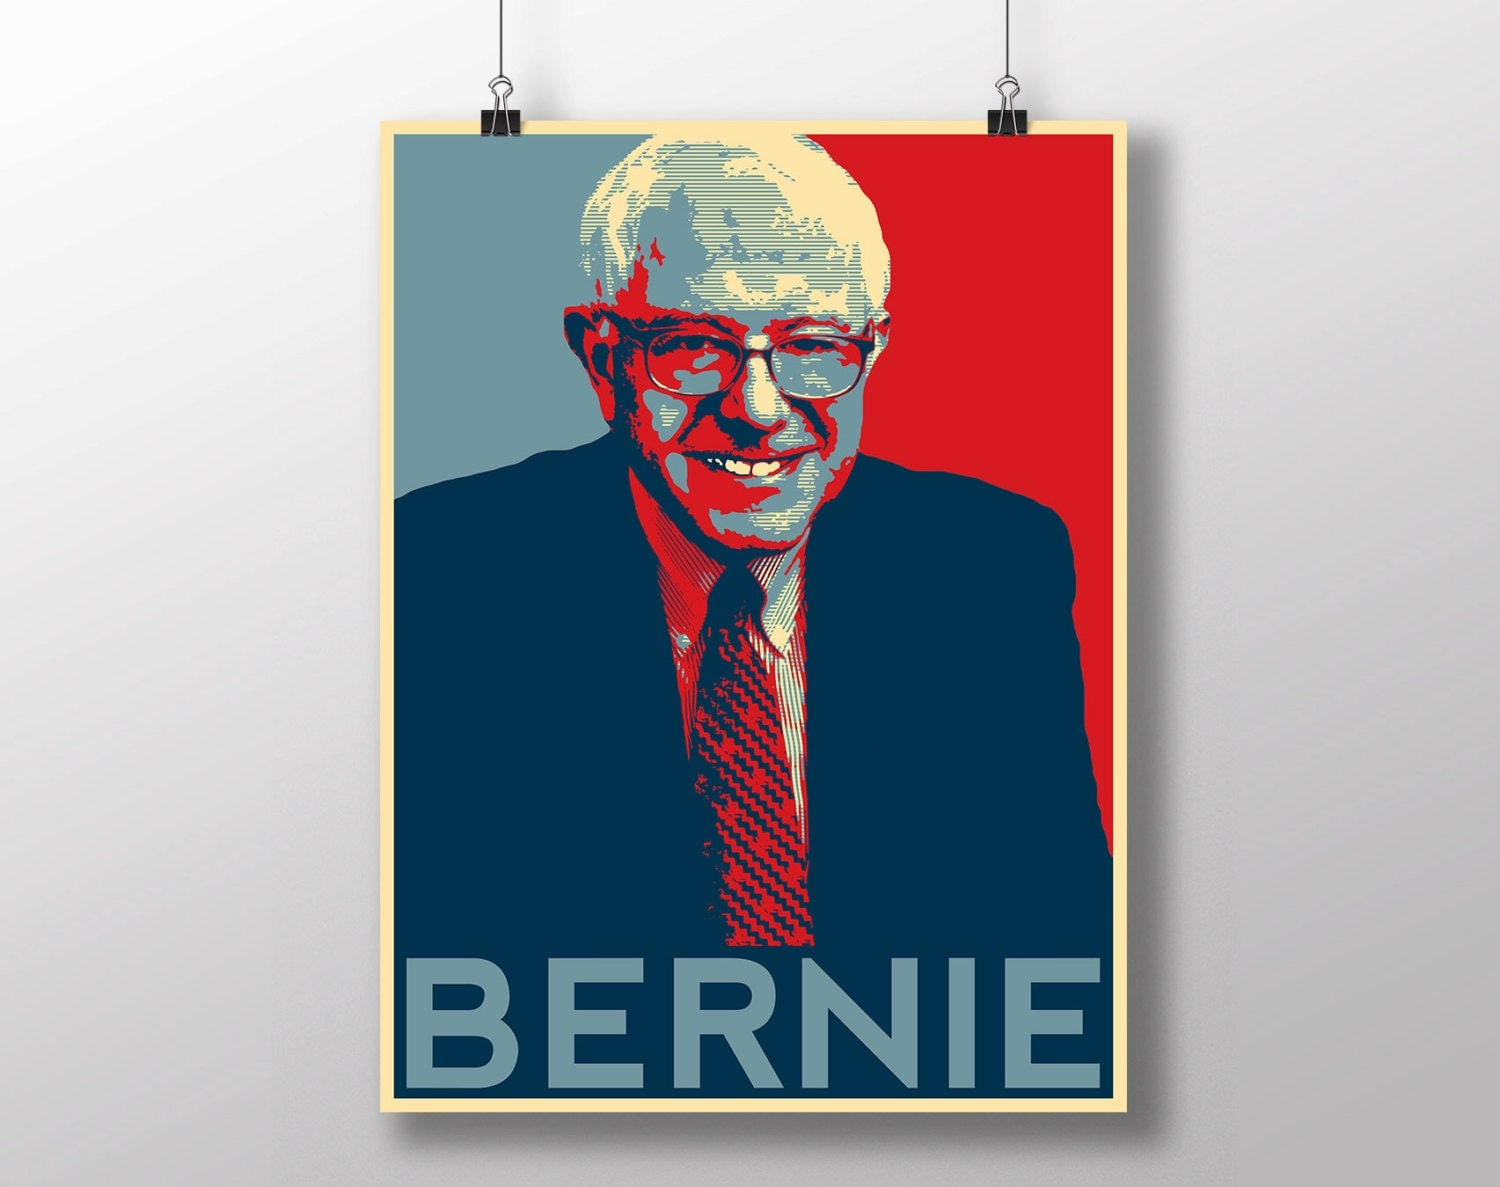 Chandeliers & Pendant Lights: https://etsy.com/listing/241481164/bernie-sanders-hope-poster...